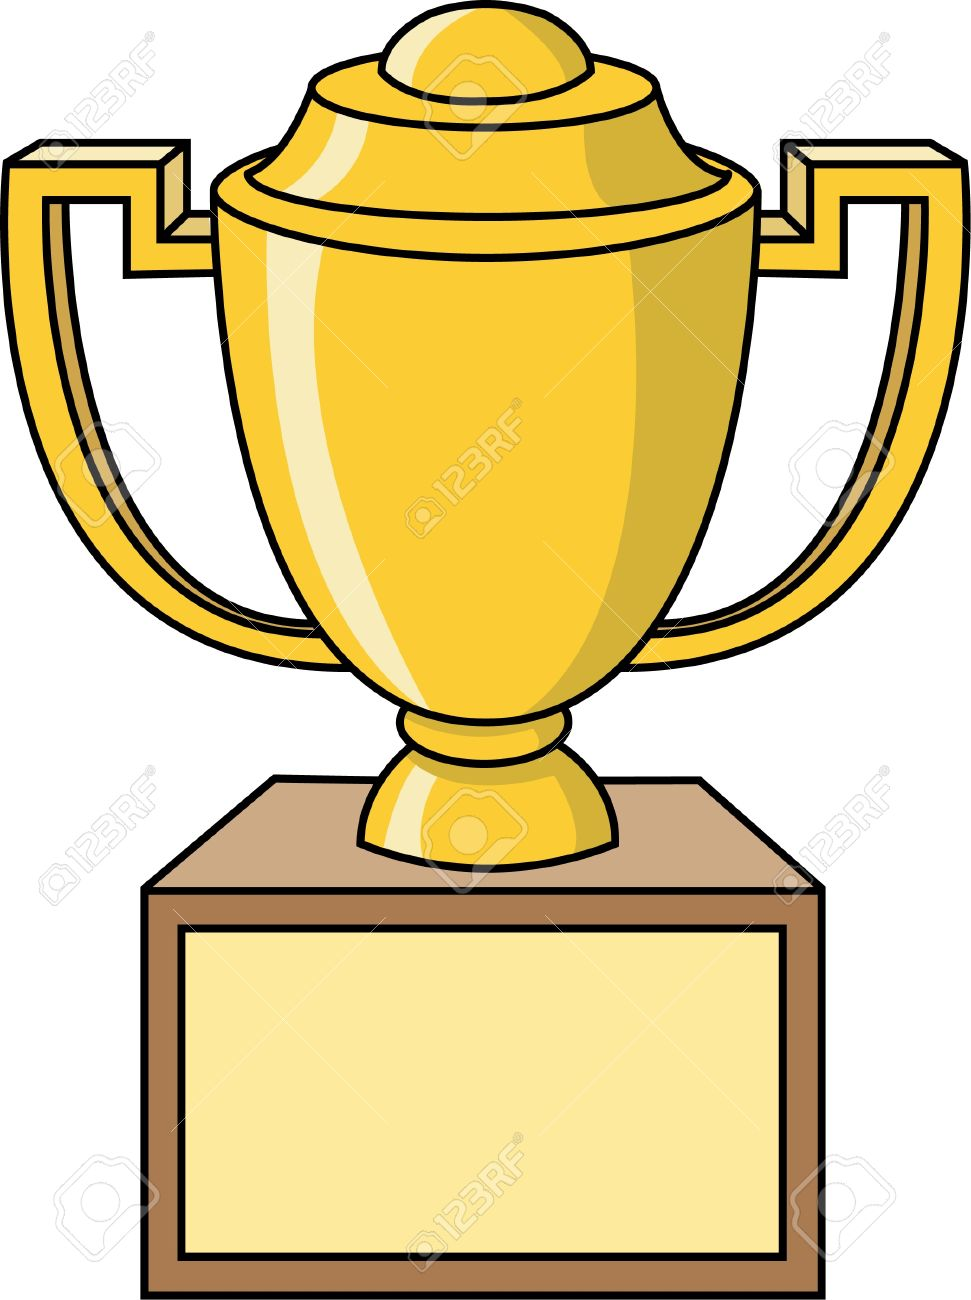 Trophy Winner Images & Stock Pictures. Royalty Free Trophy Winner ...